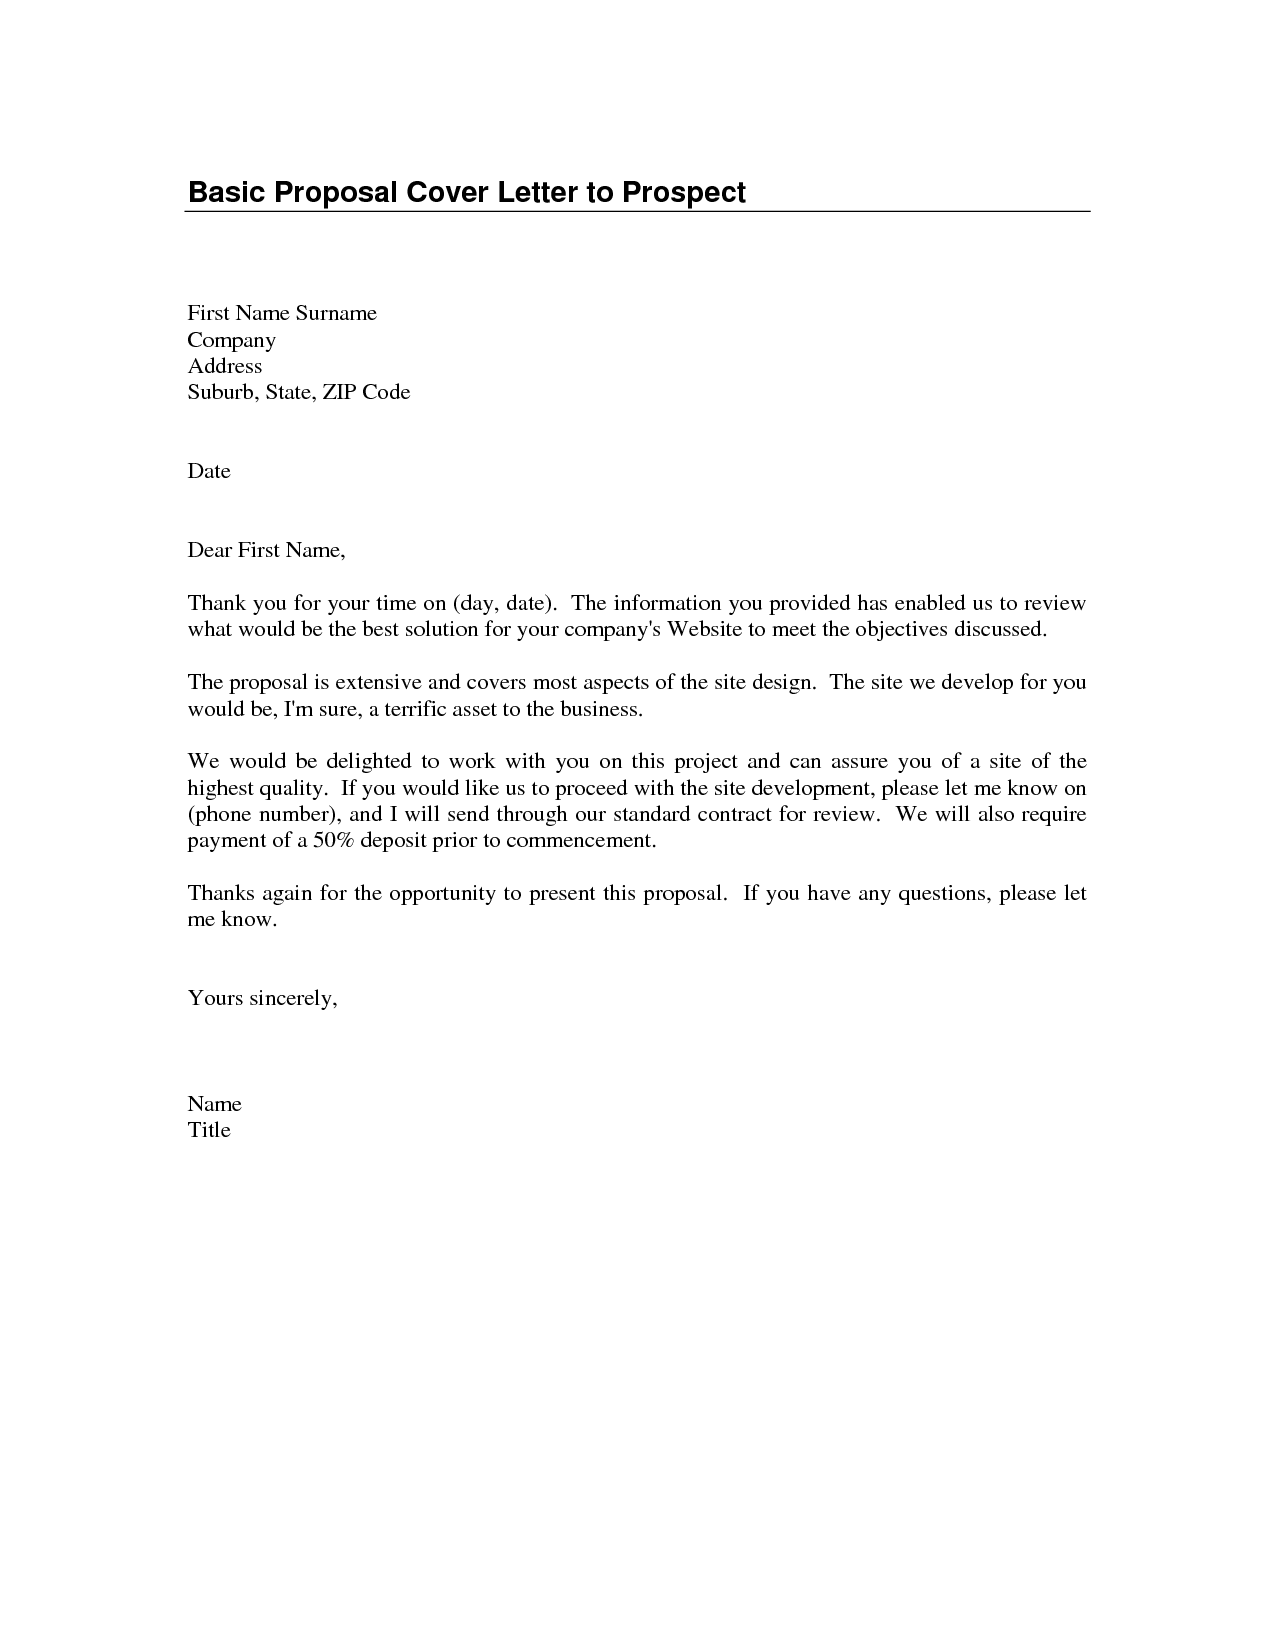 Basic Cover Letters Templates Perfect Basic Cover Letter Template